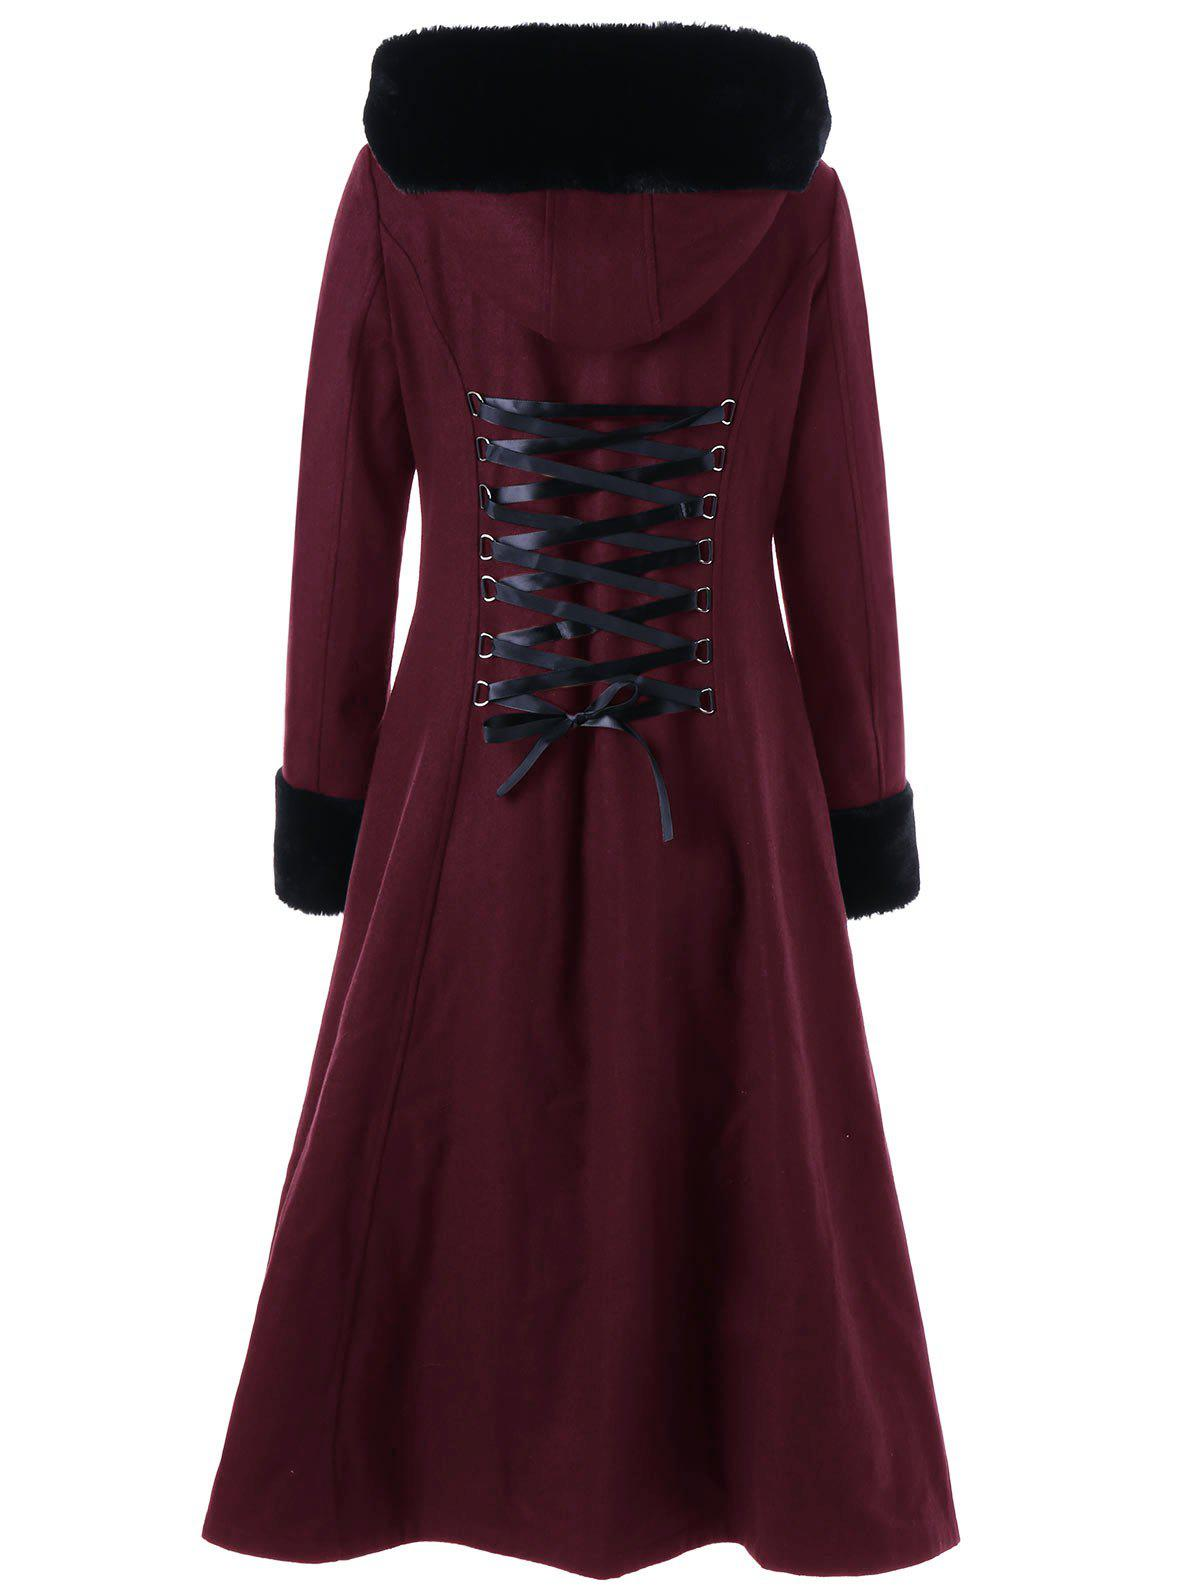 Hooded Longline Lace Up CoatWOMEN<br><br>Size: L; Color: WINE RED; Clothes Type: Wool &amp; Blends; Material: Polyester; Type: Slim; Shirt Length: Long; Sleeve Length: Full; Collar: Hooded; Pattern Type: Solid; Style: Gothic; Season: Fall,Spring,Winter; Weight: 1.2450kg; Package Contents: 1 x Coat;